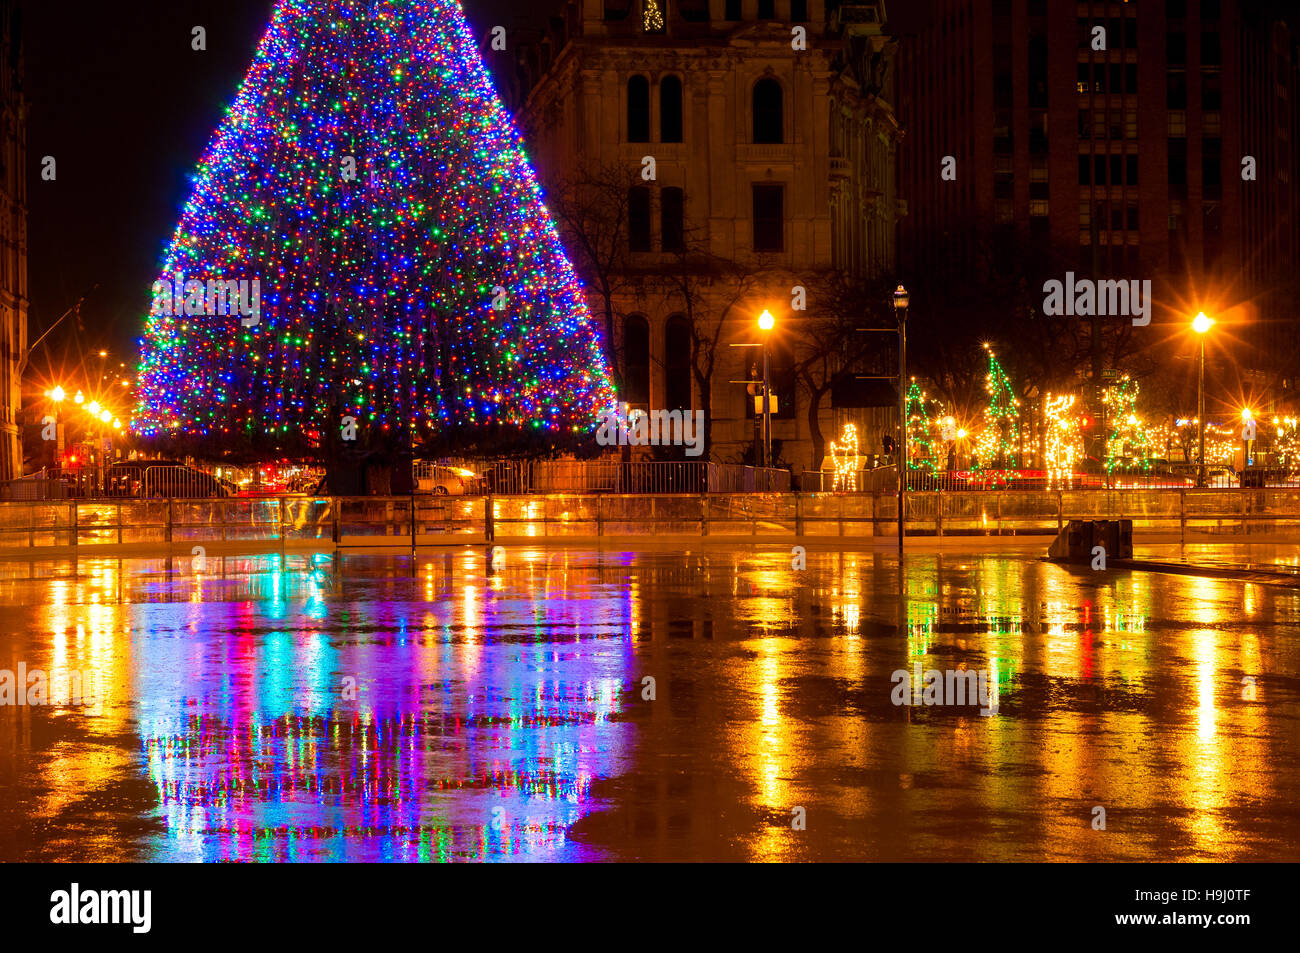 The big lighted Christmas tree in Syracuse NY reflected in the wet skating rink on Clinton Square - Stock Image